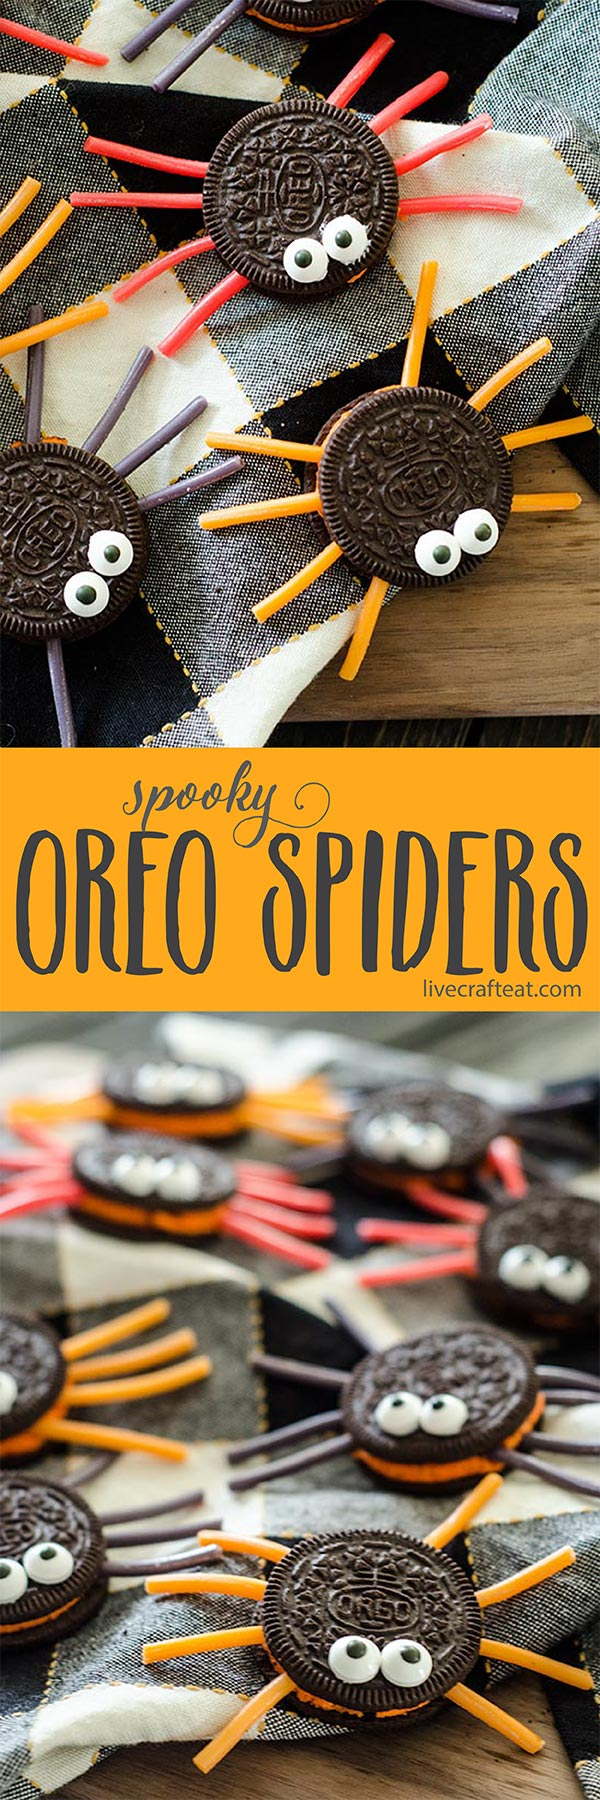 kid-friendly, adorable, and incredibly easy to make! oreo spider cookies are the perfect treat for halloween.